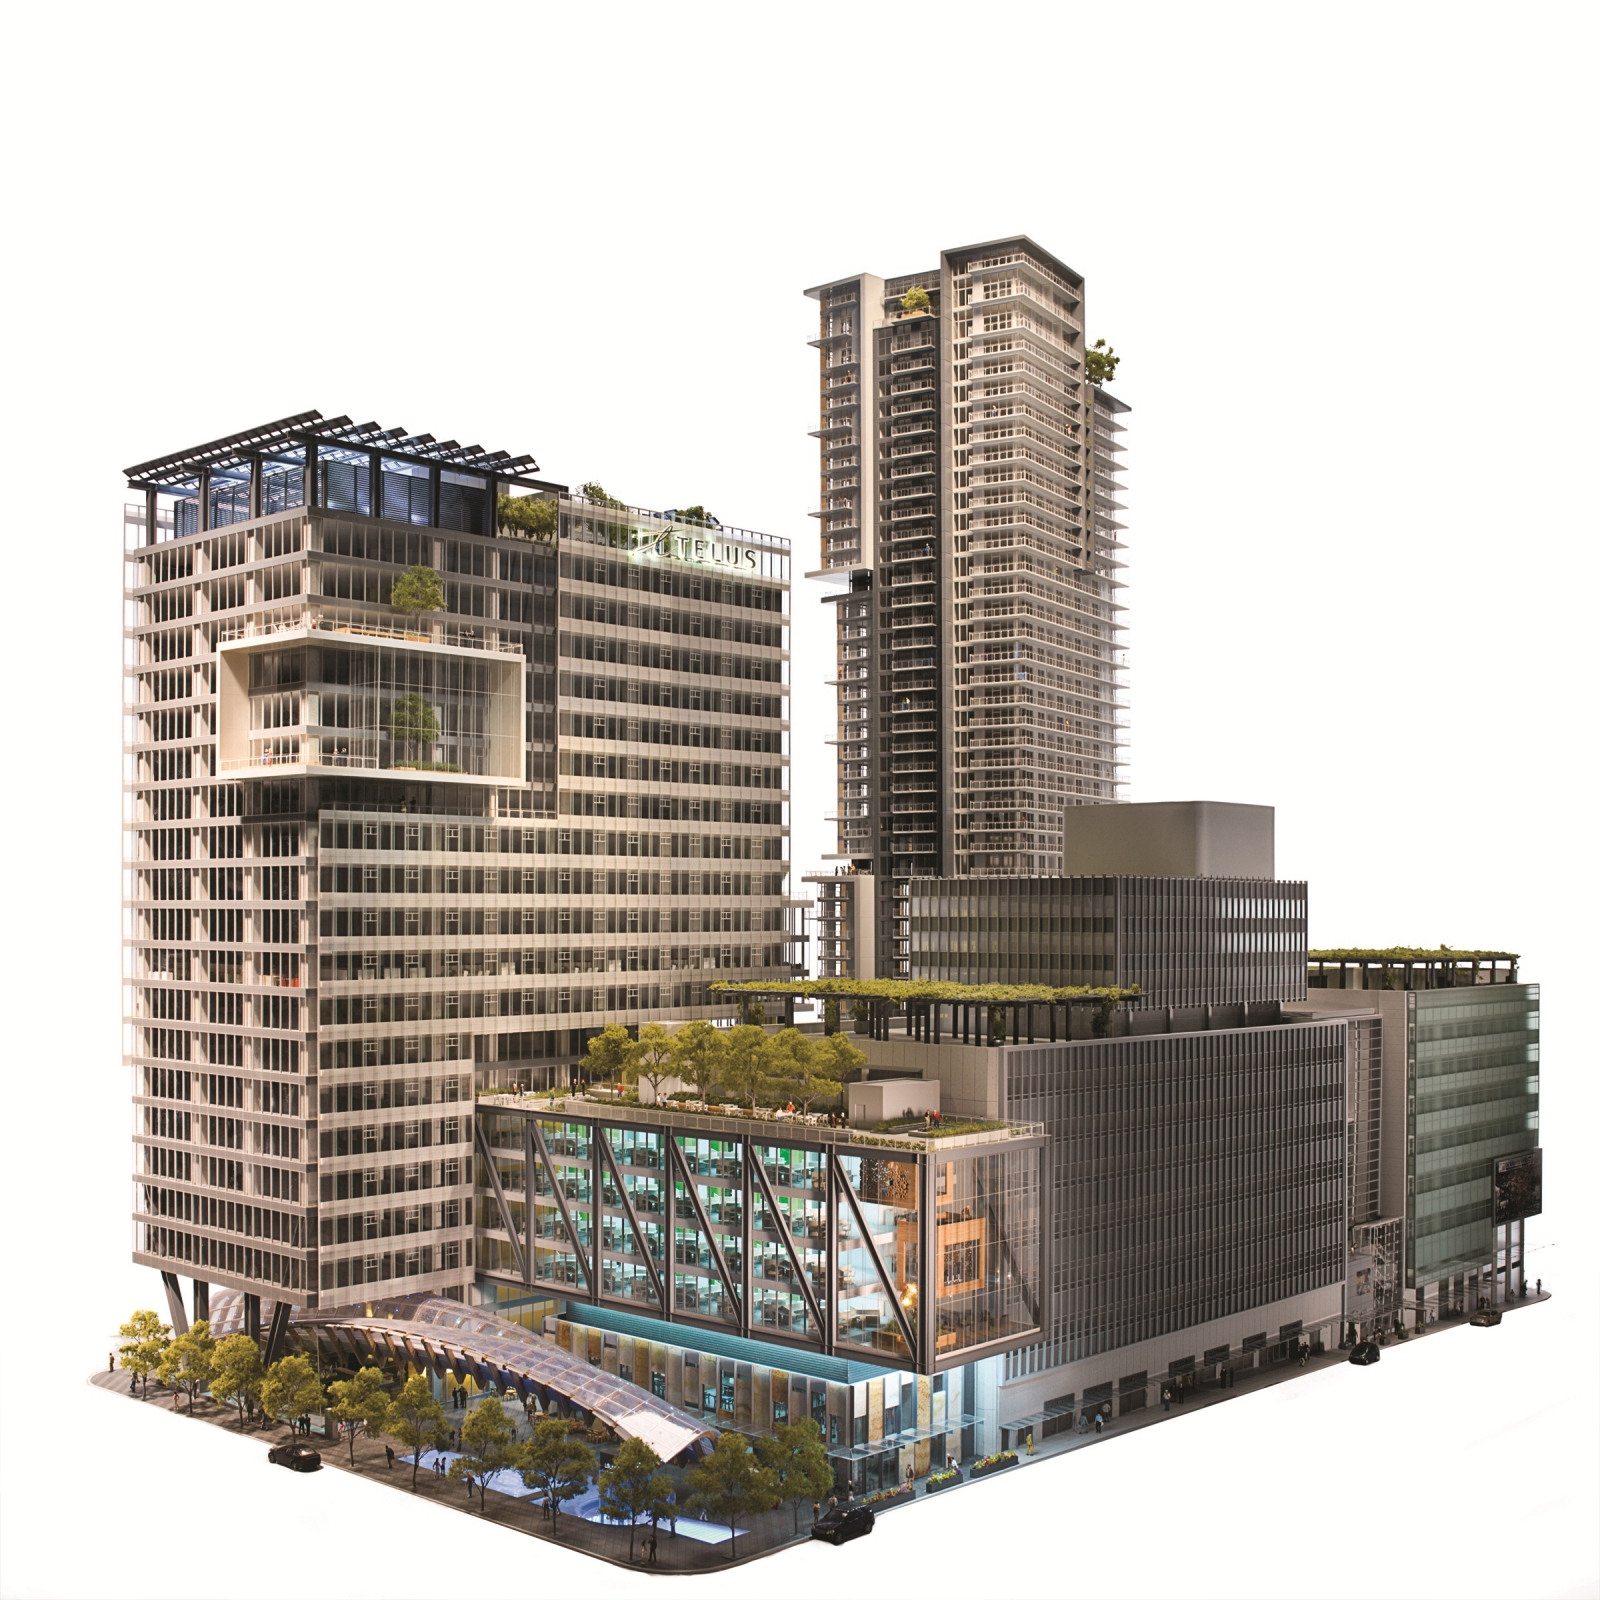 TELUS Garden - Vancouver's Most Sensational Development in Recent History